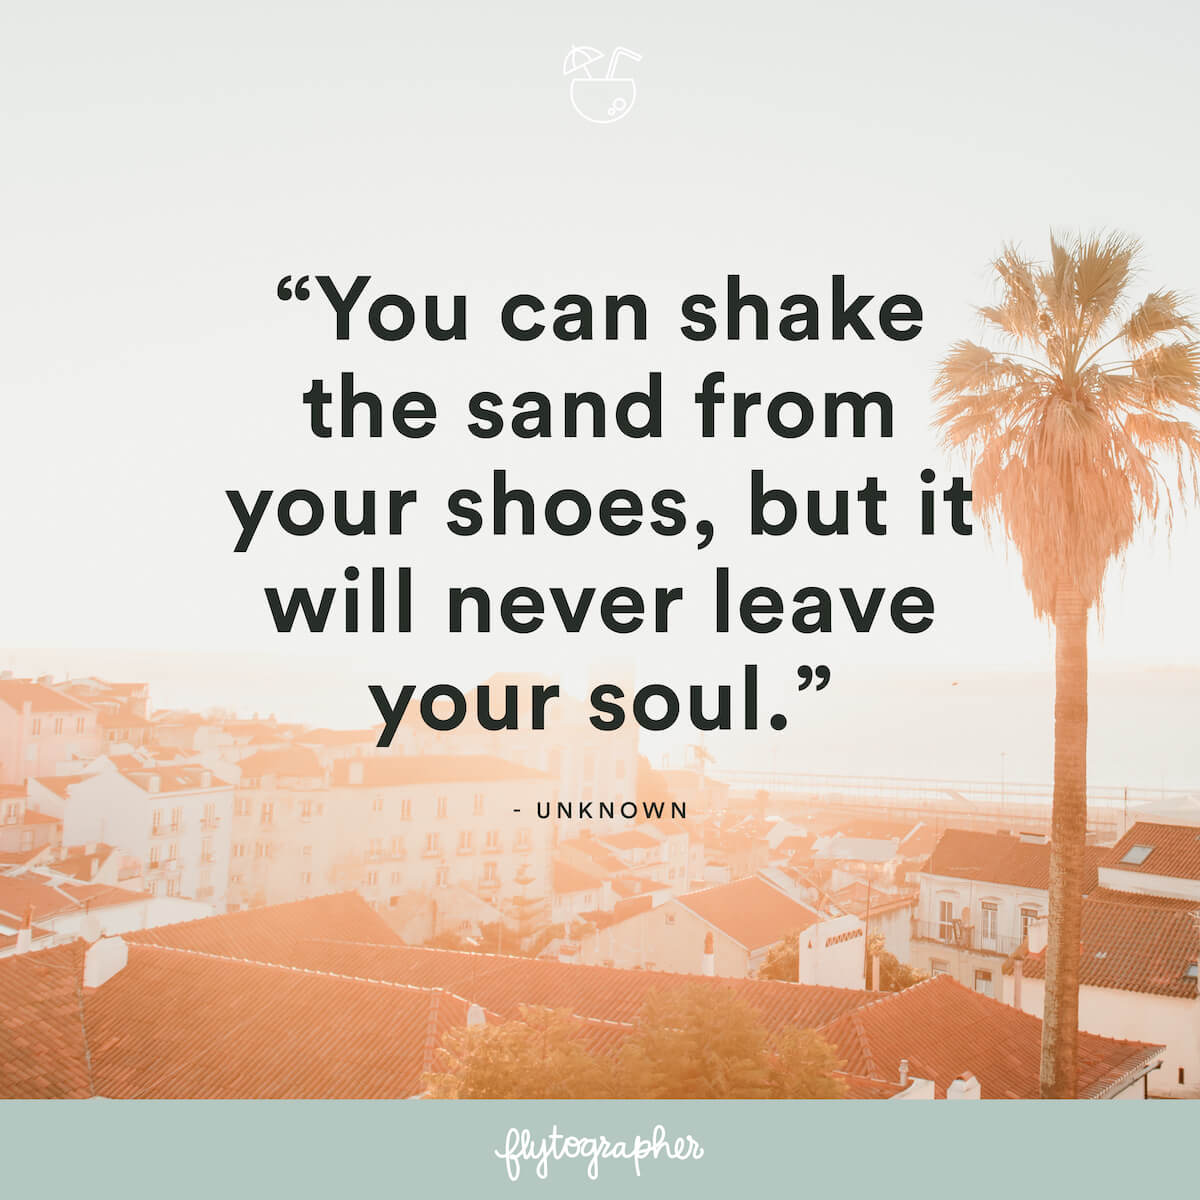 "Travel quote: ""You can shake the sand from your shoes, but it will never leave your soul."" - Unknown"